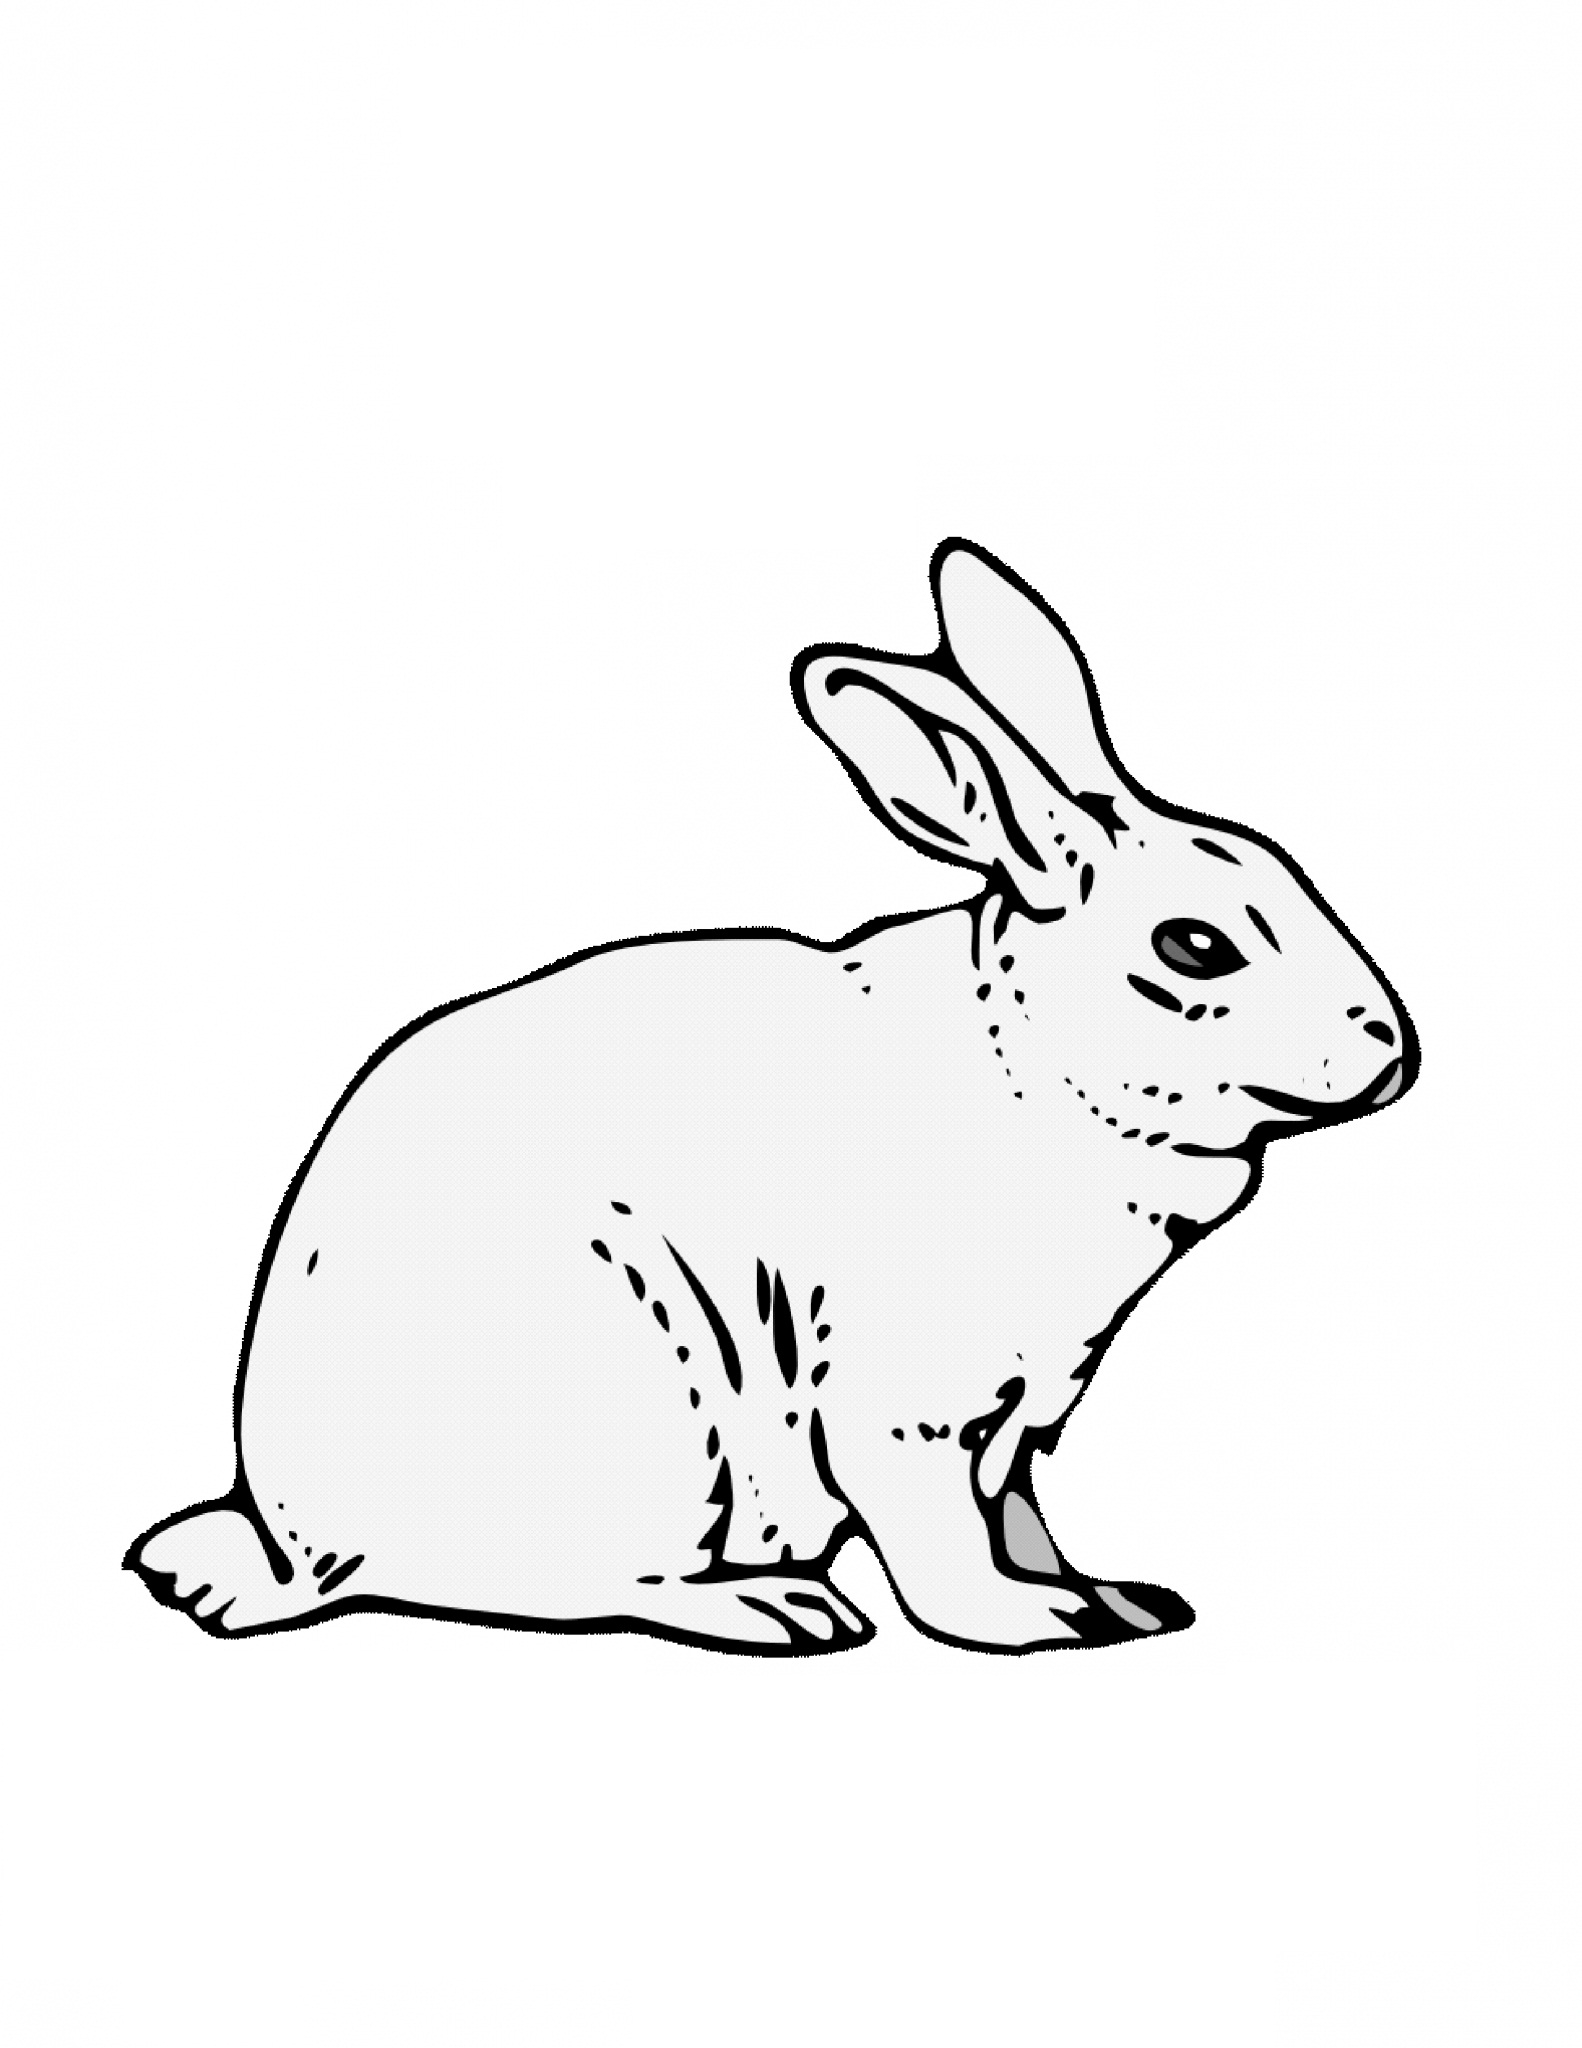 picture of a rabbit to color three cute bunnies eating the carrot coloring page rabbit of to a picture color